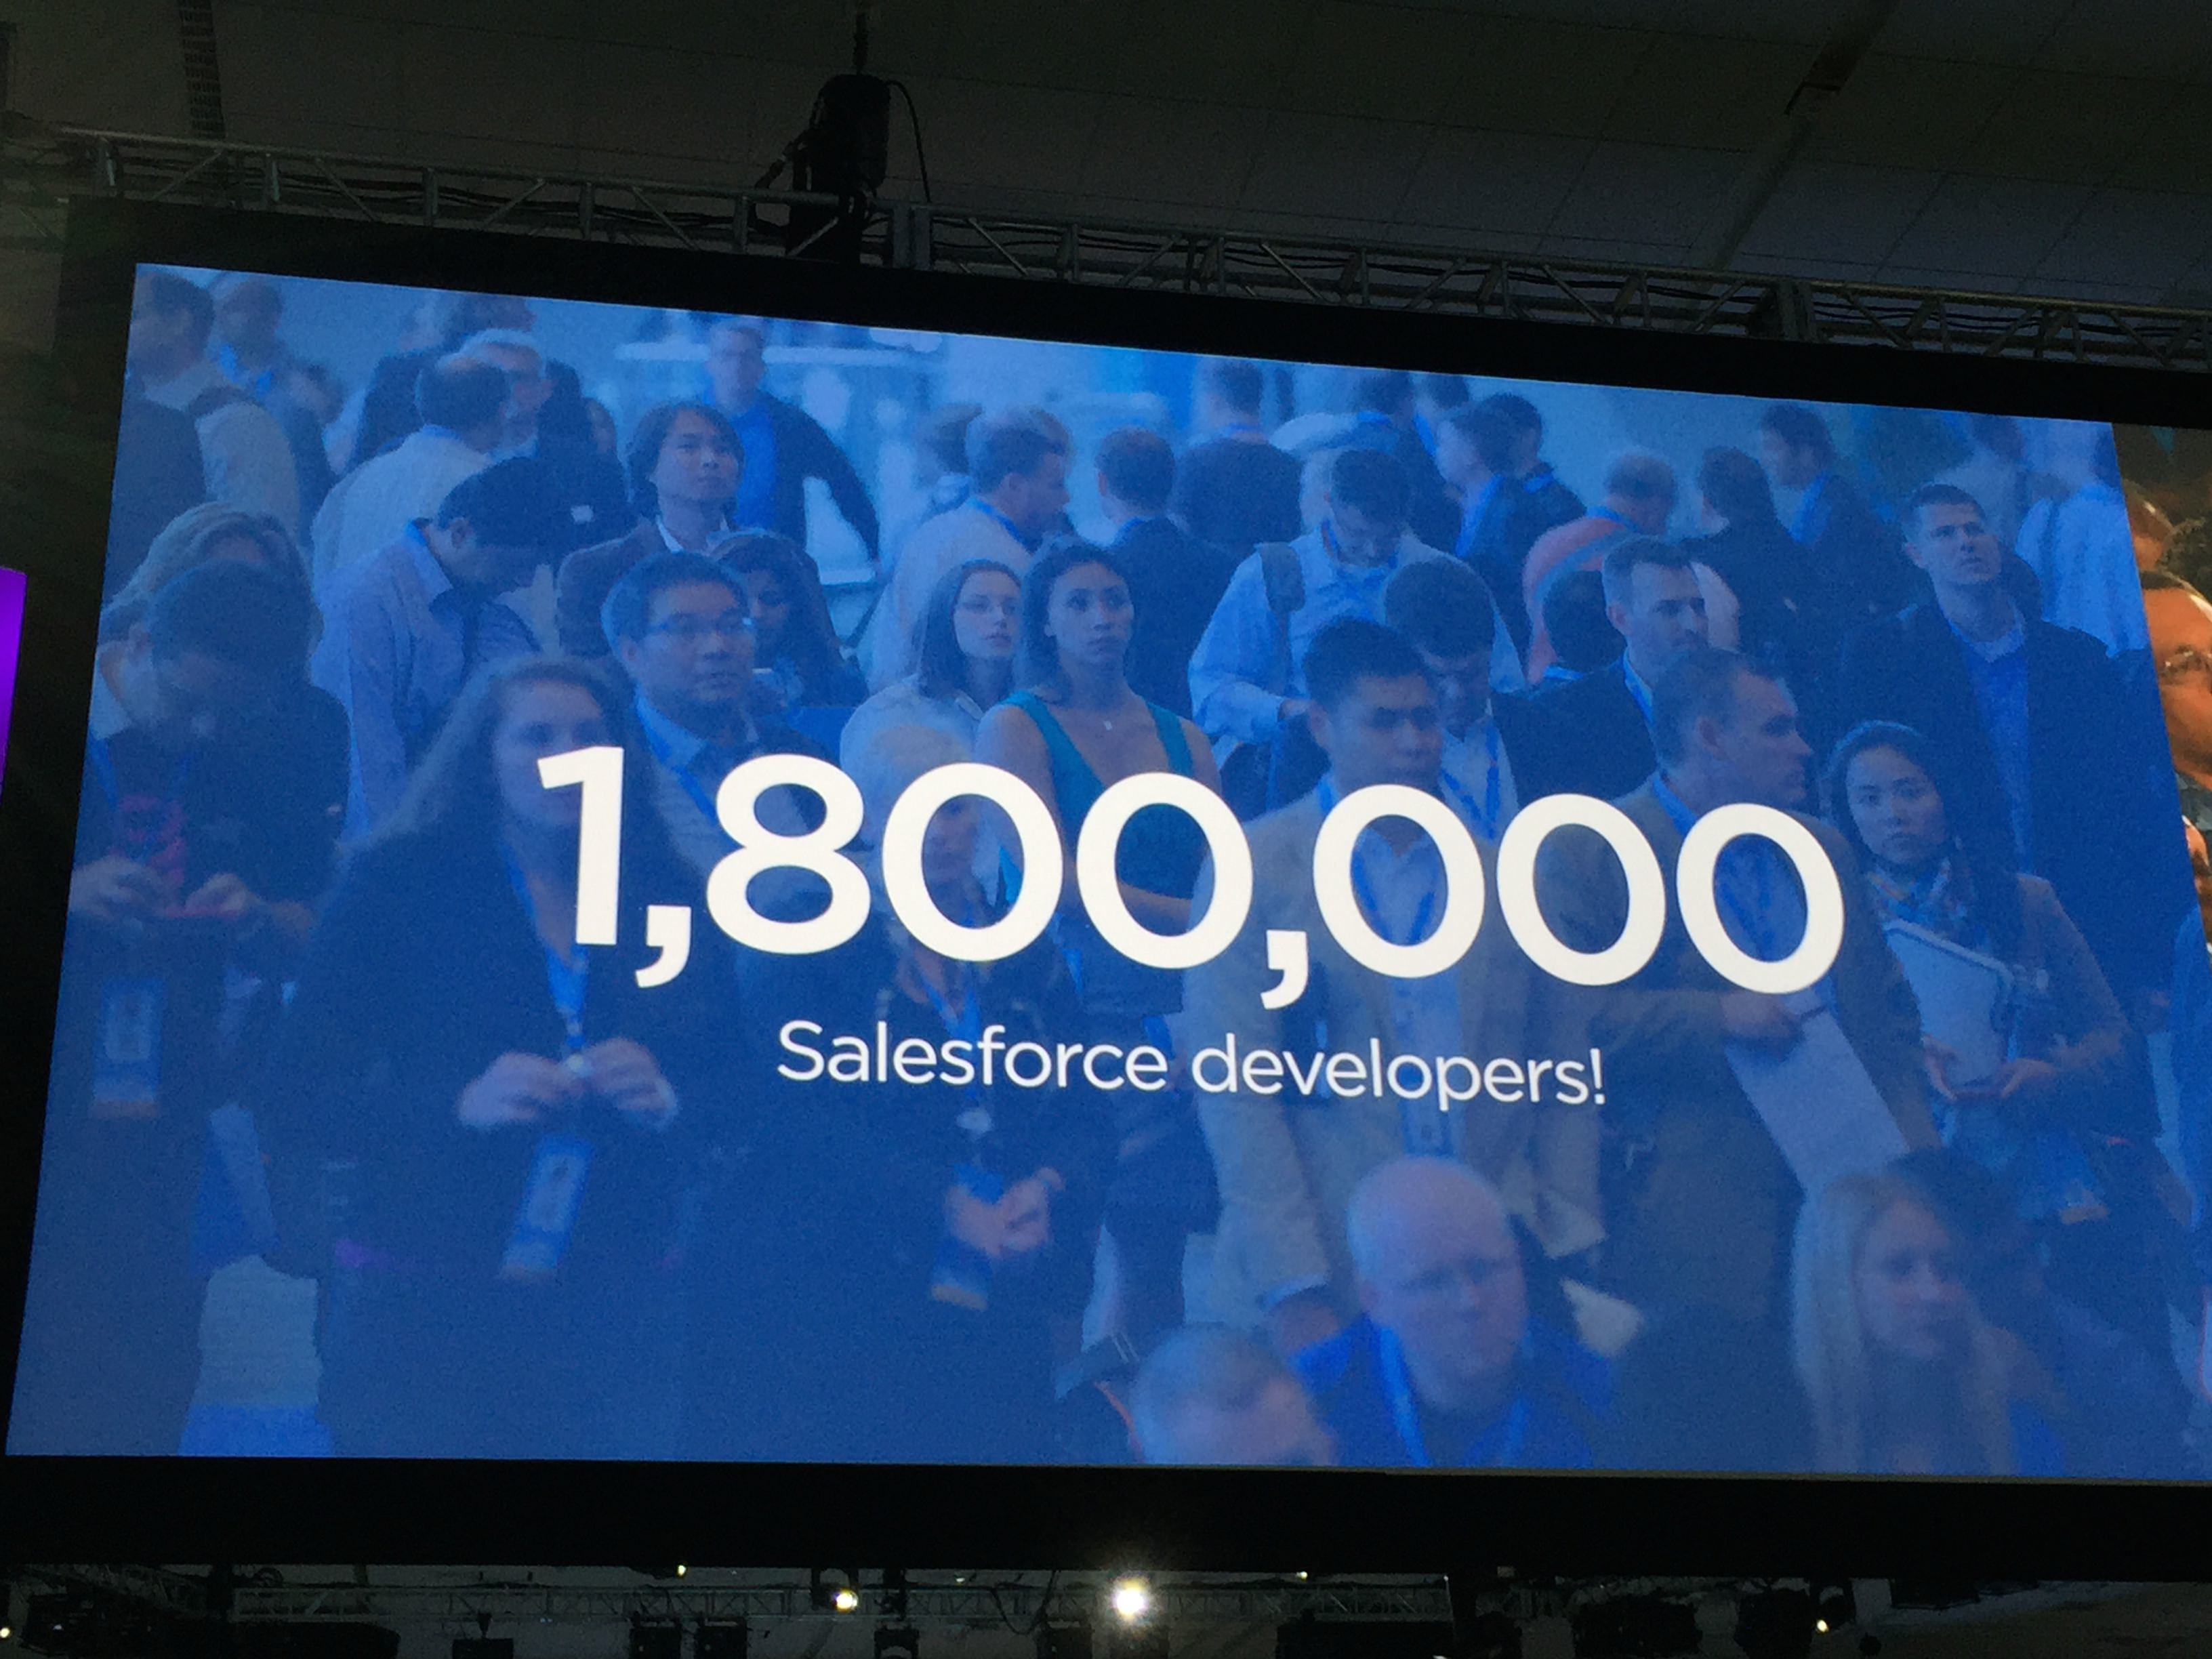 SalesforceDevelopers